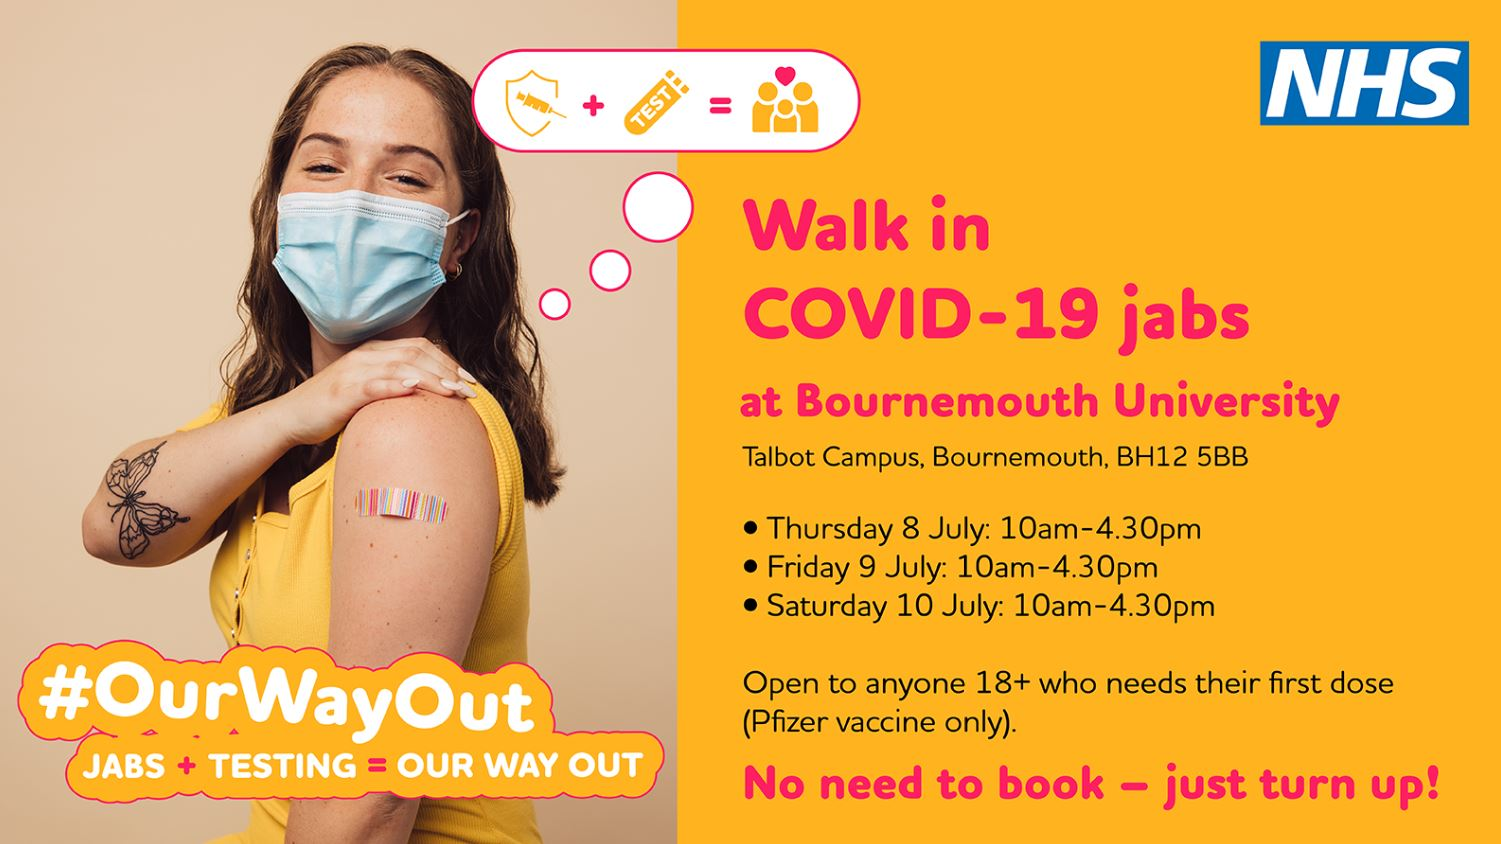 <p>If you still need your first dose of the COVID-19 vaccine you can 'grab a jab' at a number of walk-in clinics across Dorset this Saturday (10 July).</p>